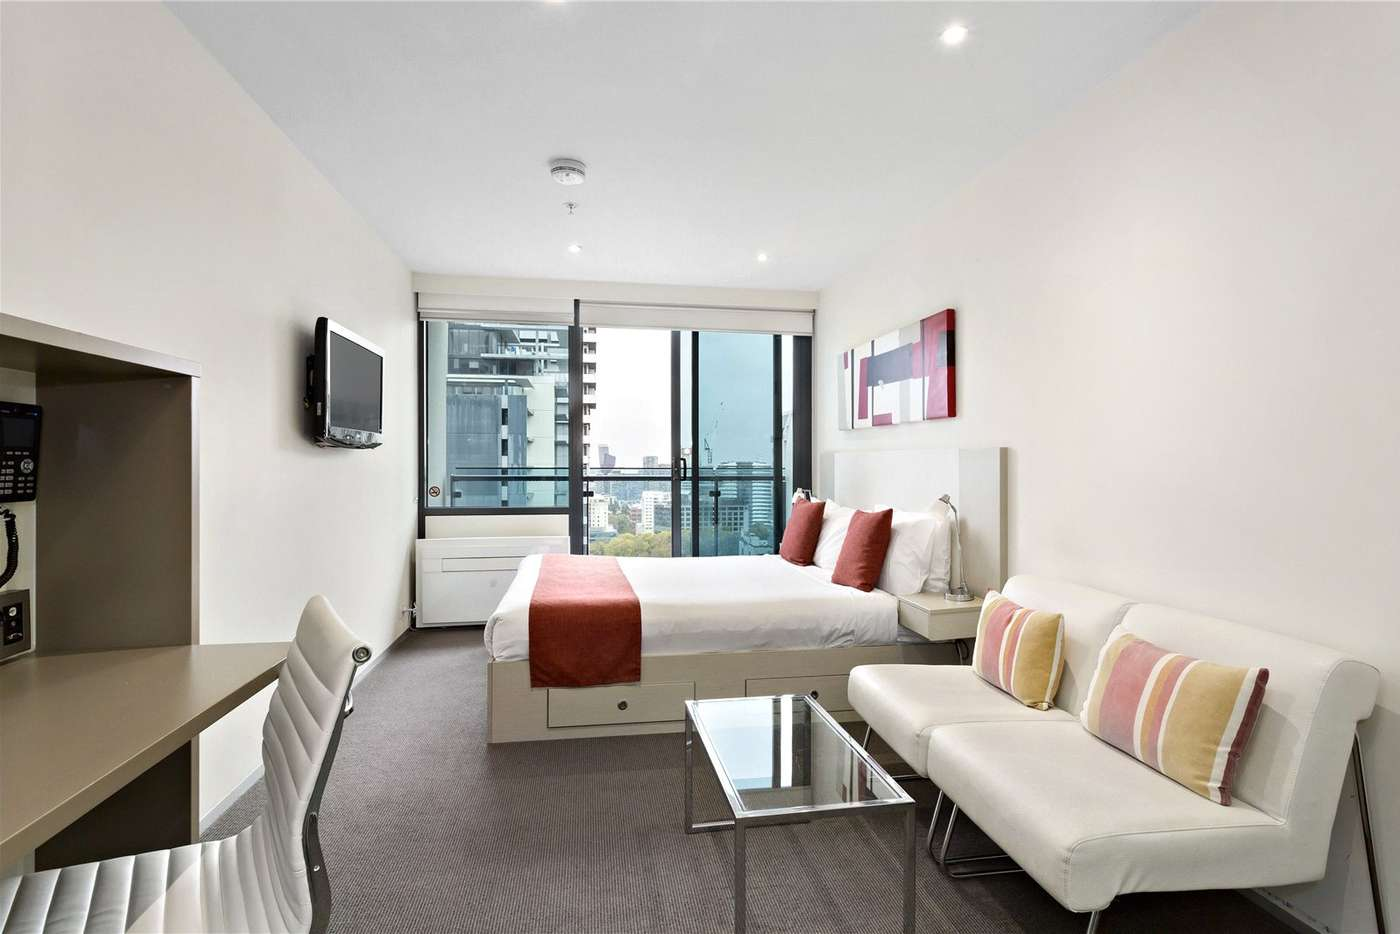 Main view of Homely studio listing, 2310/181 ABeckett Street, Melbourne VIC 3000